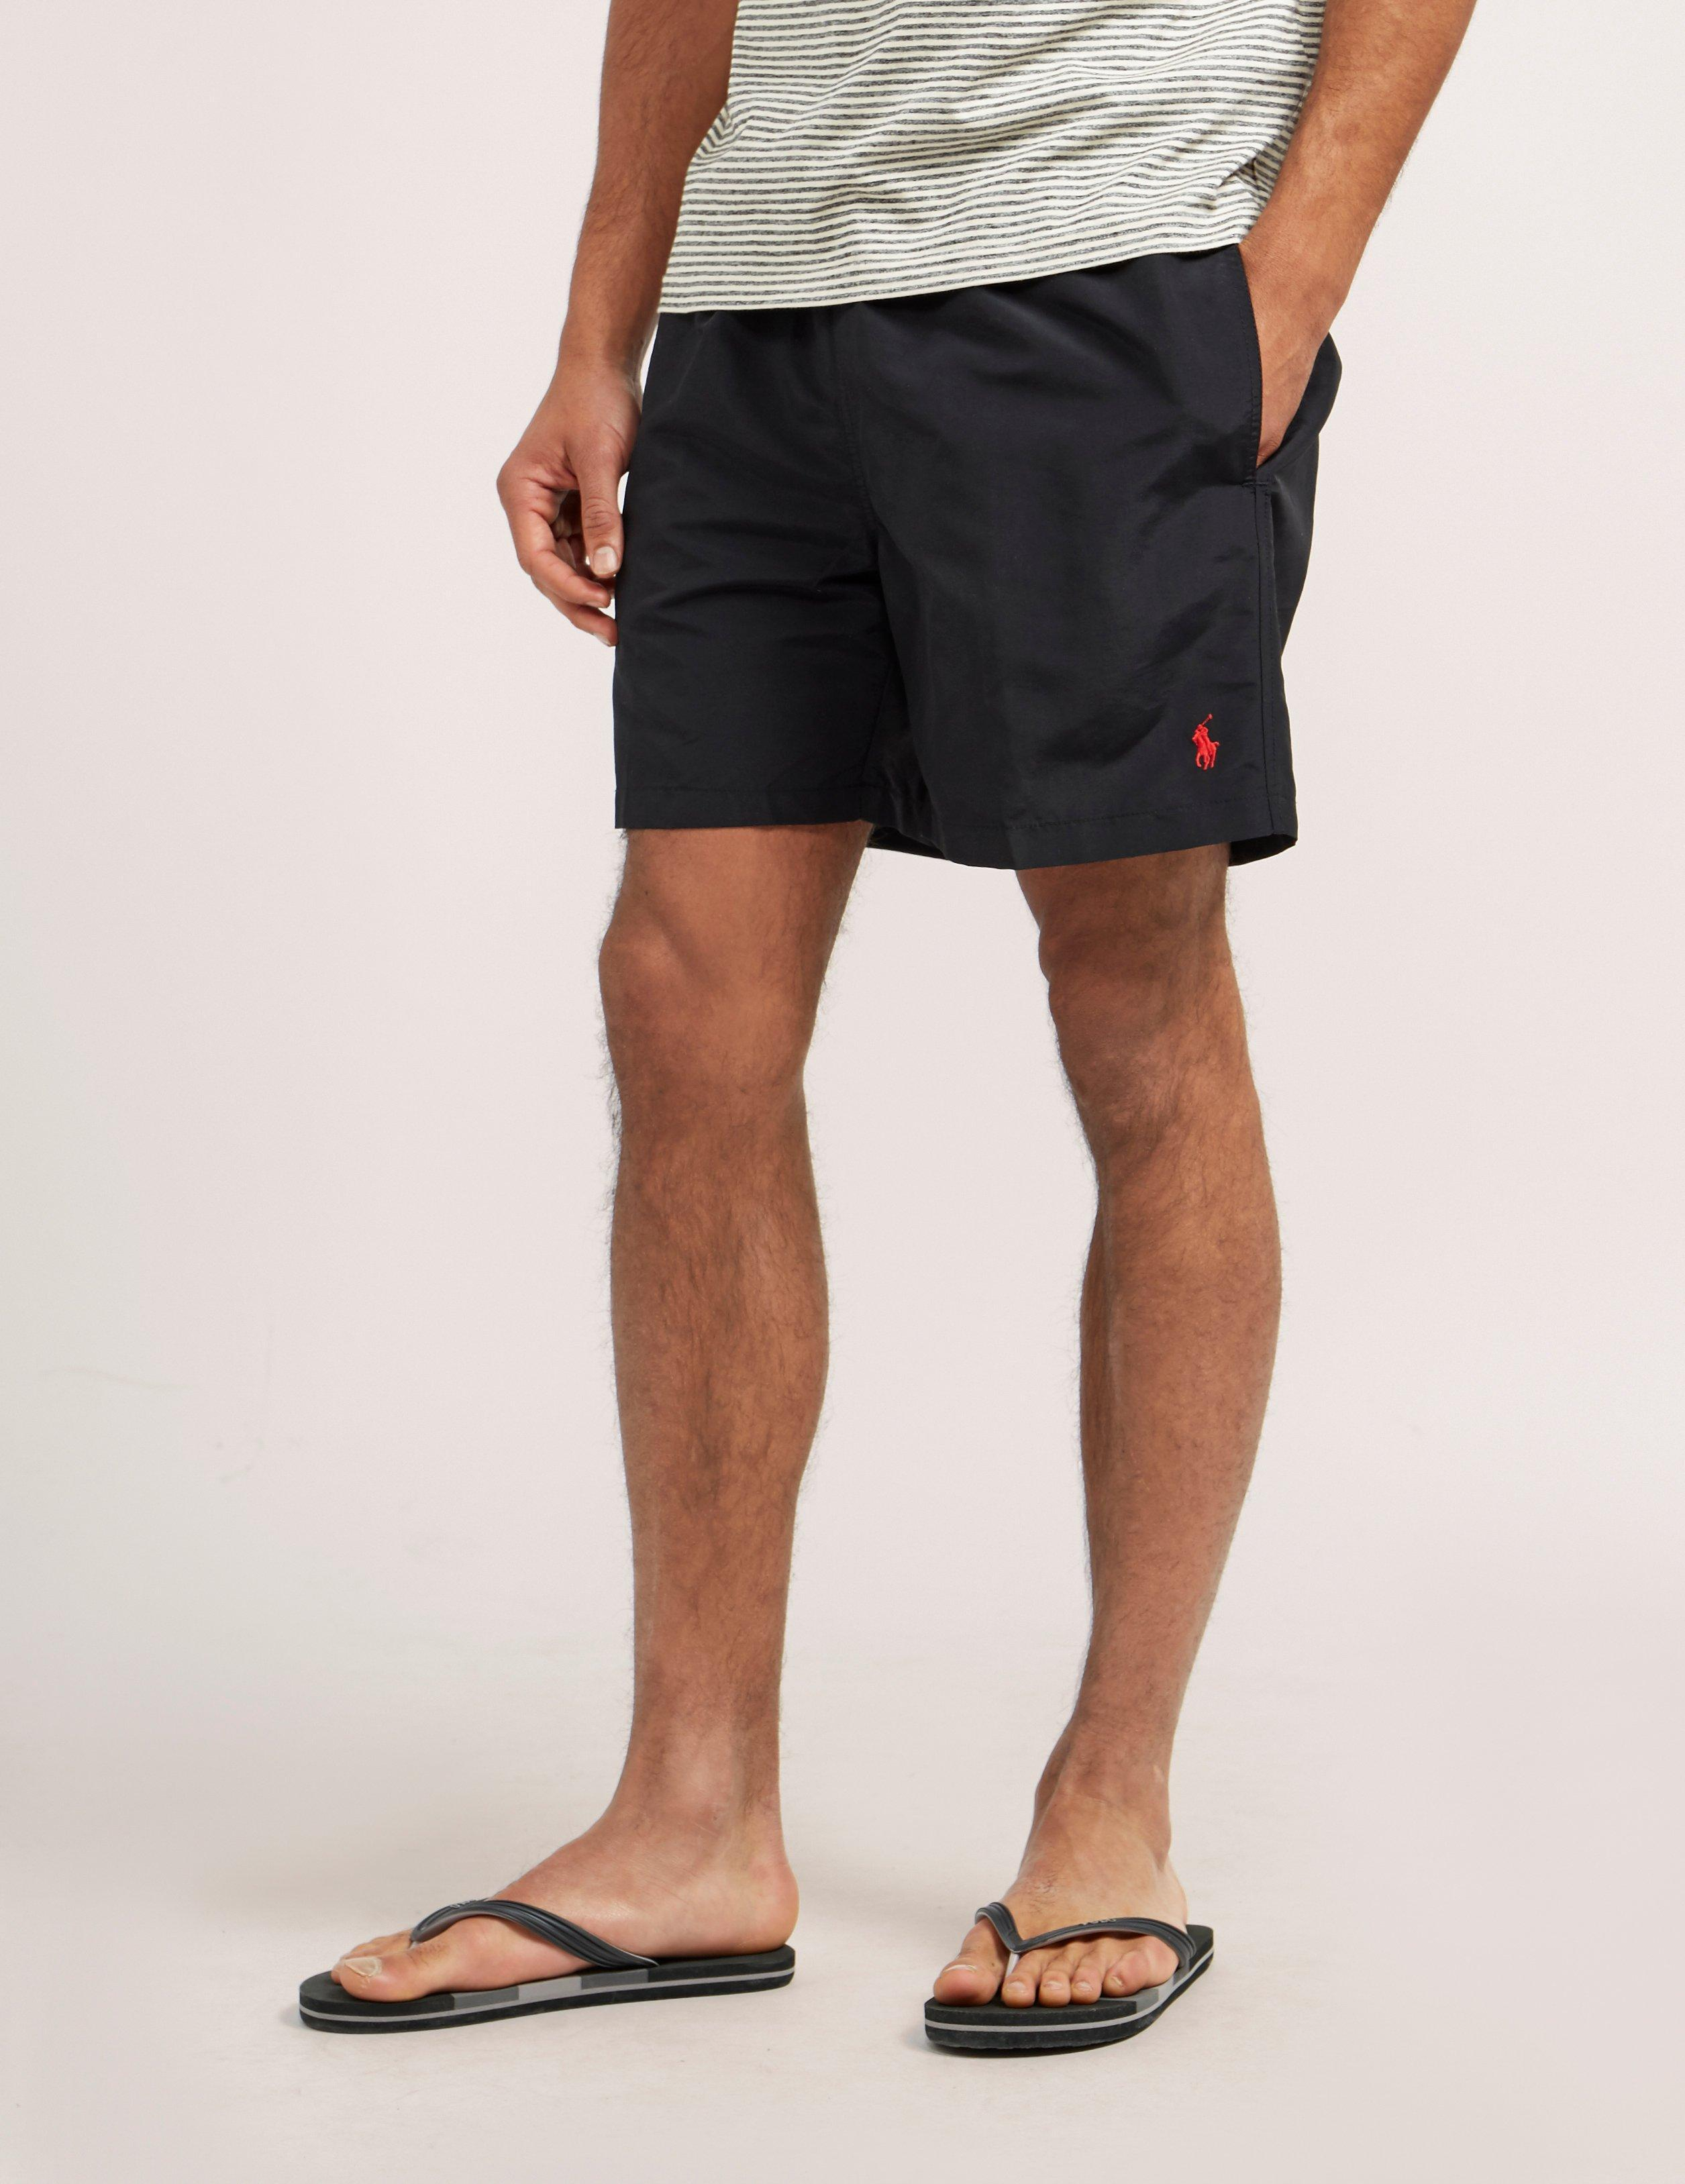 87ebb43c94 Polo Ralph Lauren Mens Hawaiian Shorts Black in Black for Men - Lyst